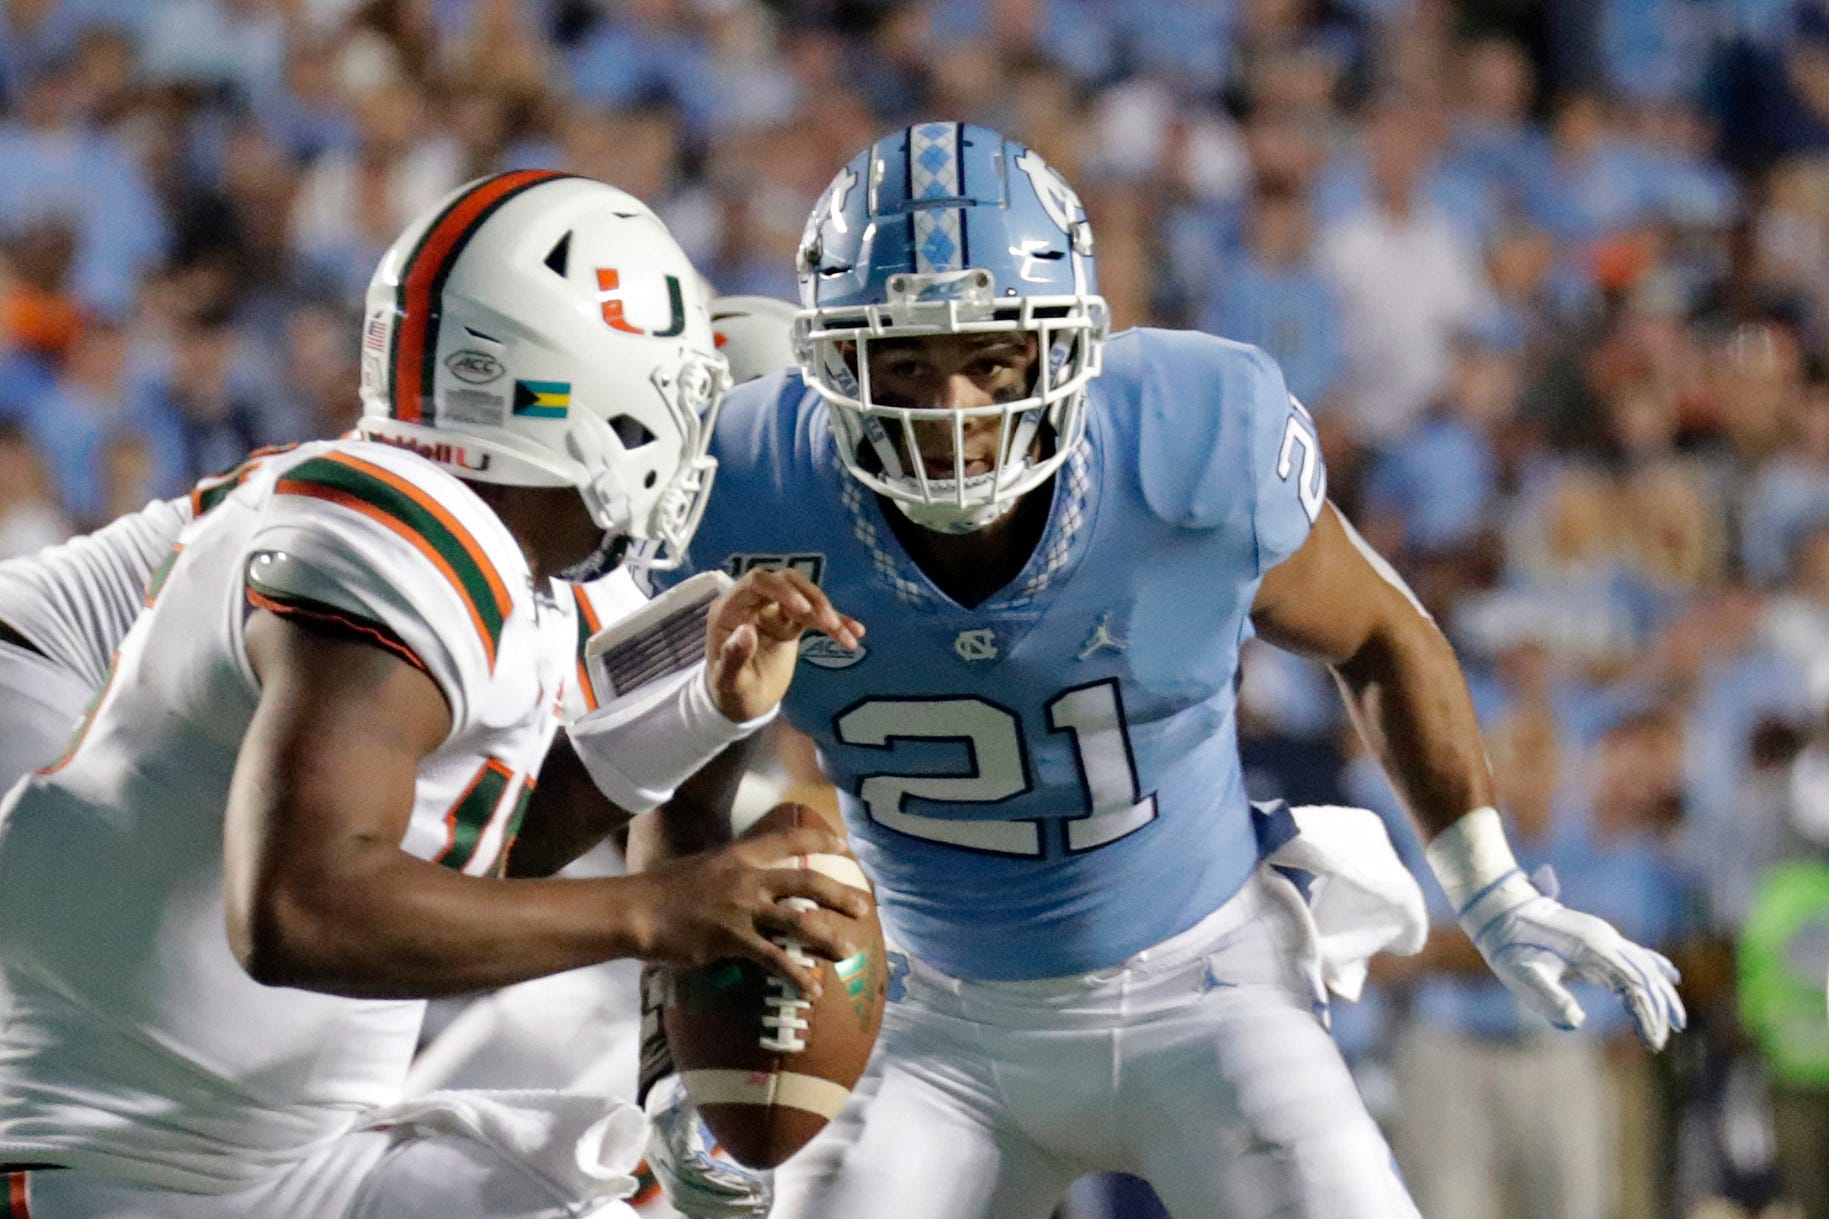 UNC football players cross-train to prepare for multiple positions